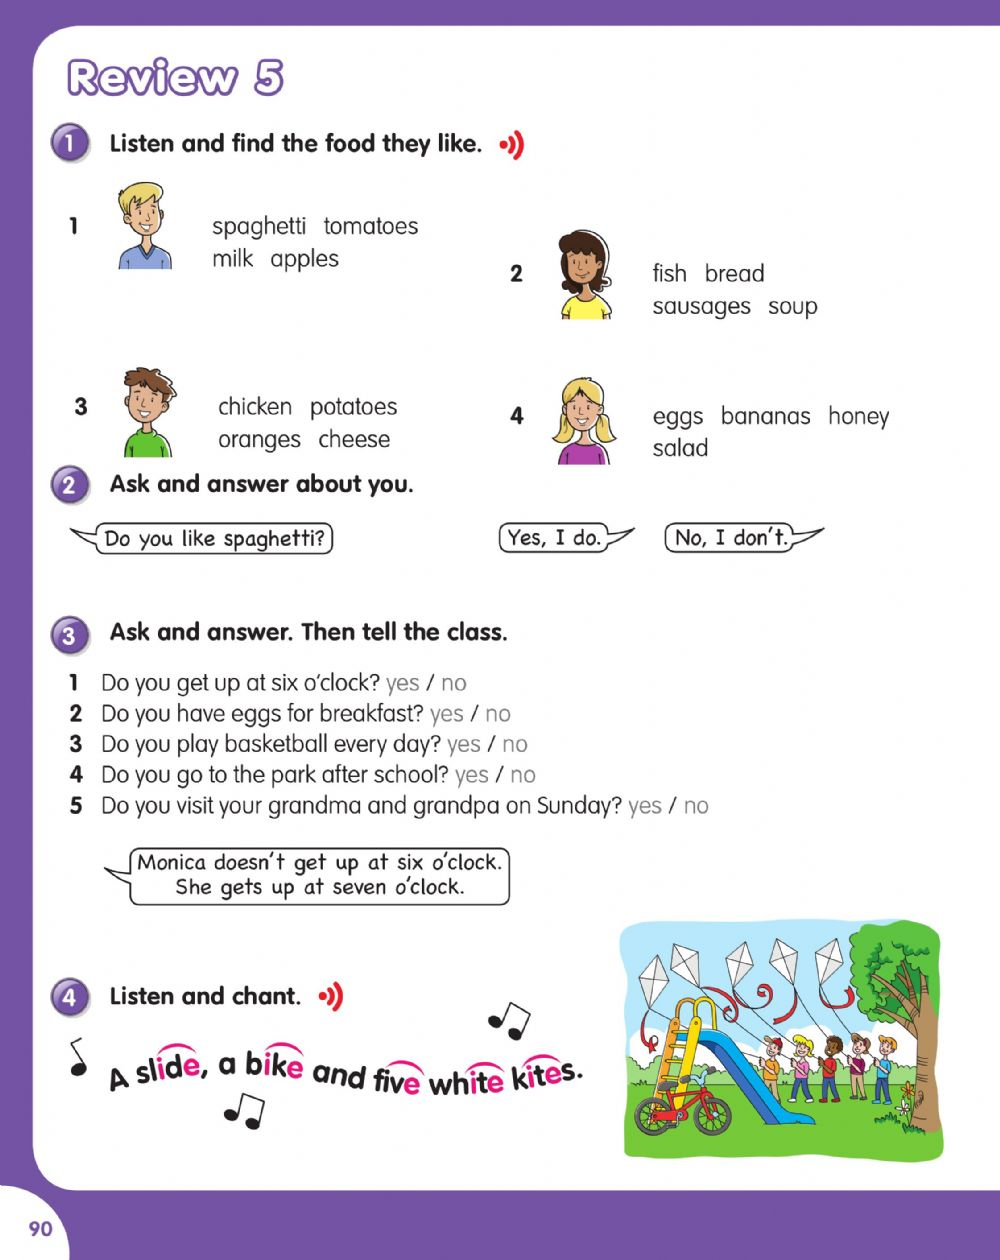 medium resolution of Review 5 Pupils book 3rd grade worksheet